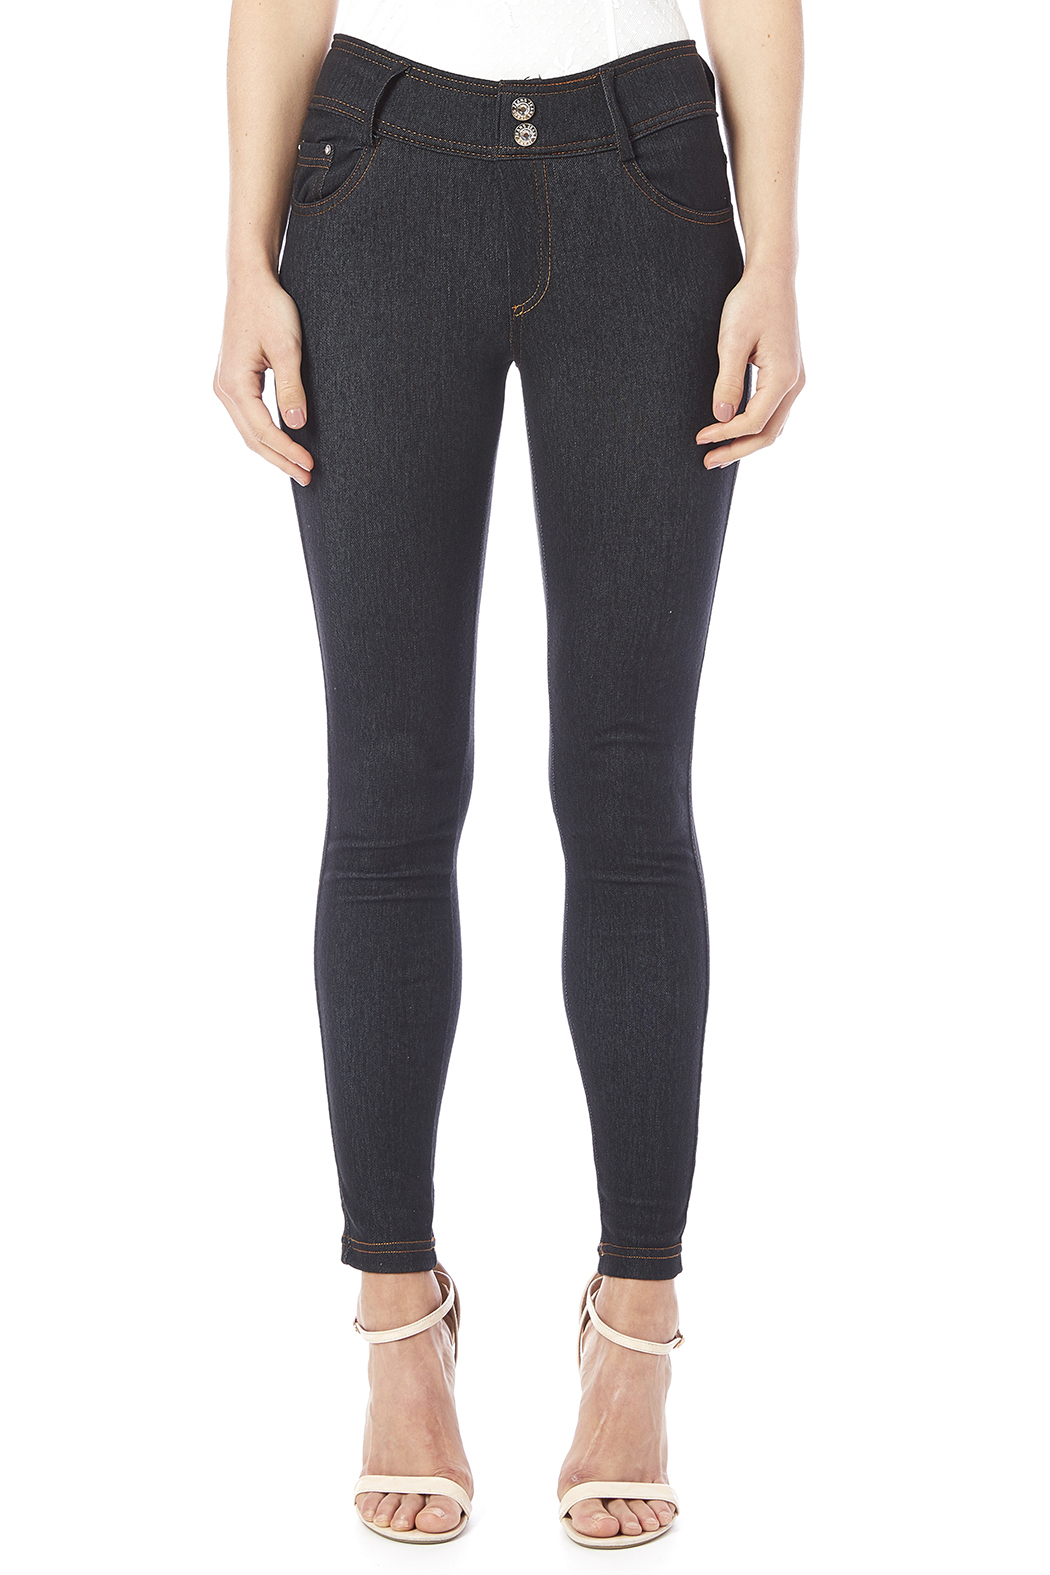 Daisy's Fashions Crystal Accented Jeggings - Side Cropped Image